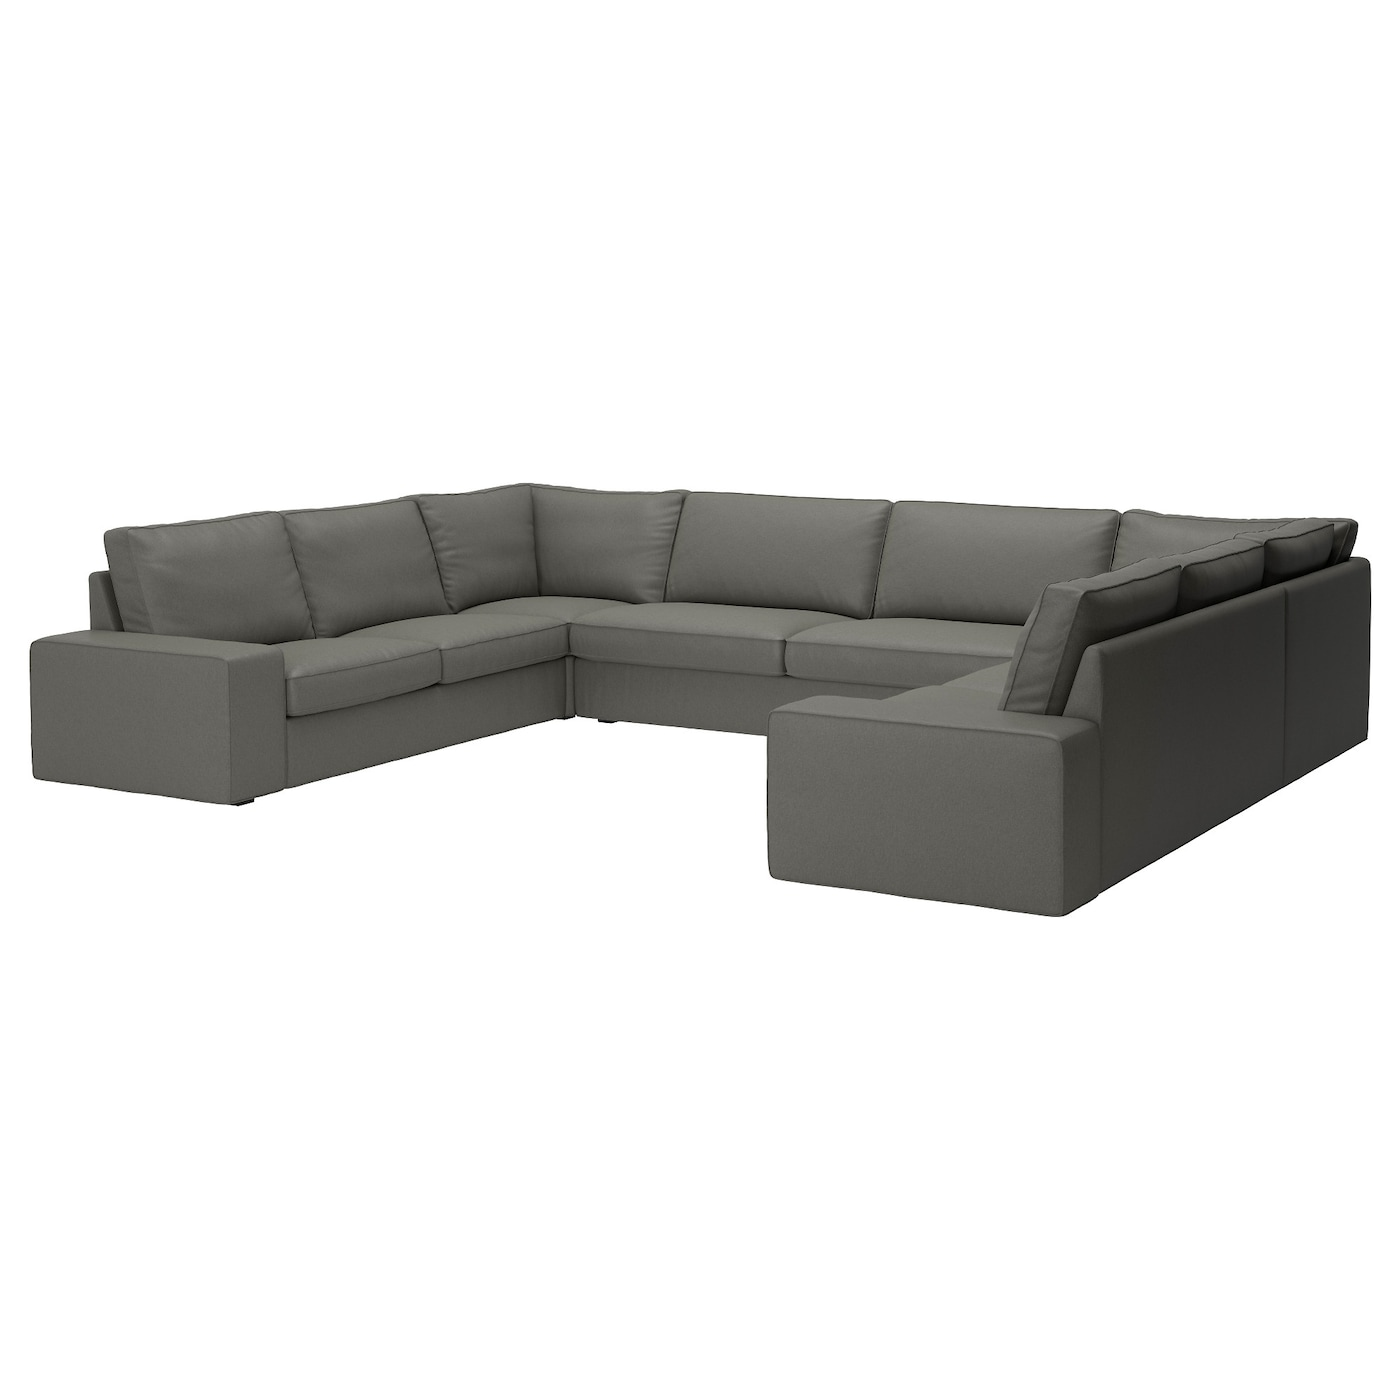 IKEA KIVIK u-shaped sofa, 7-seat 10 year guarantee. Read about the terms in the guarantee brochure.